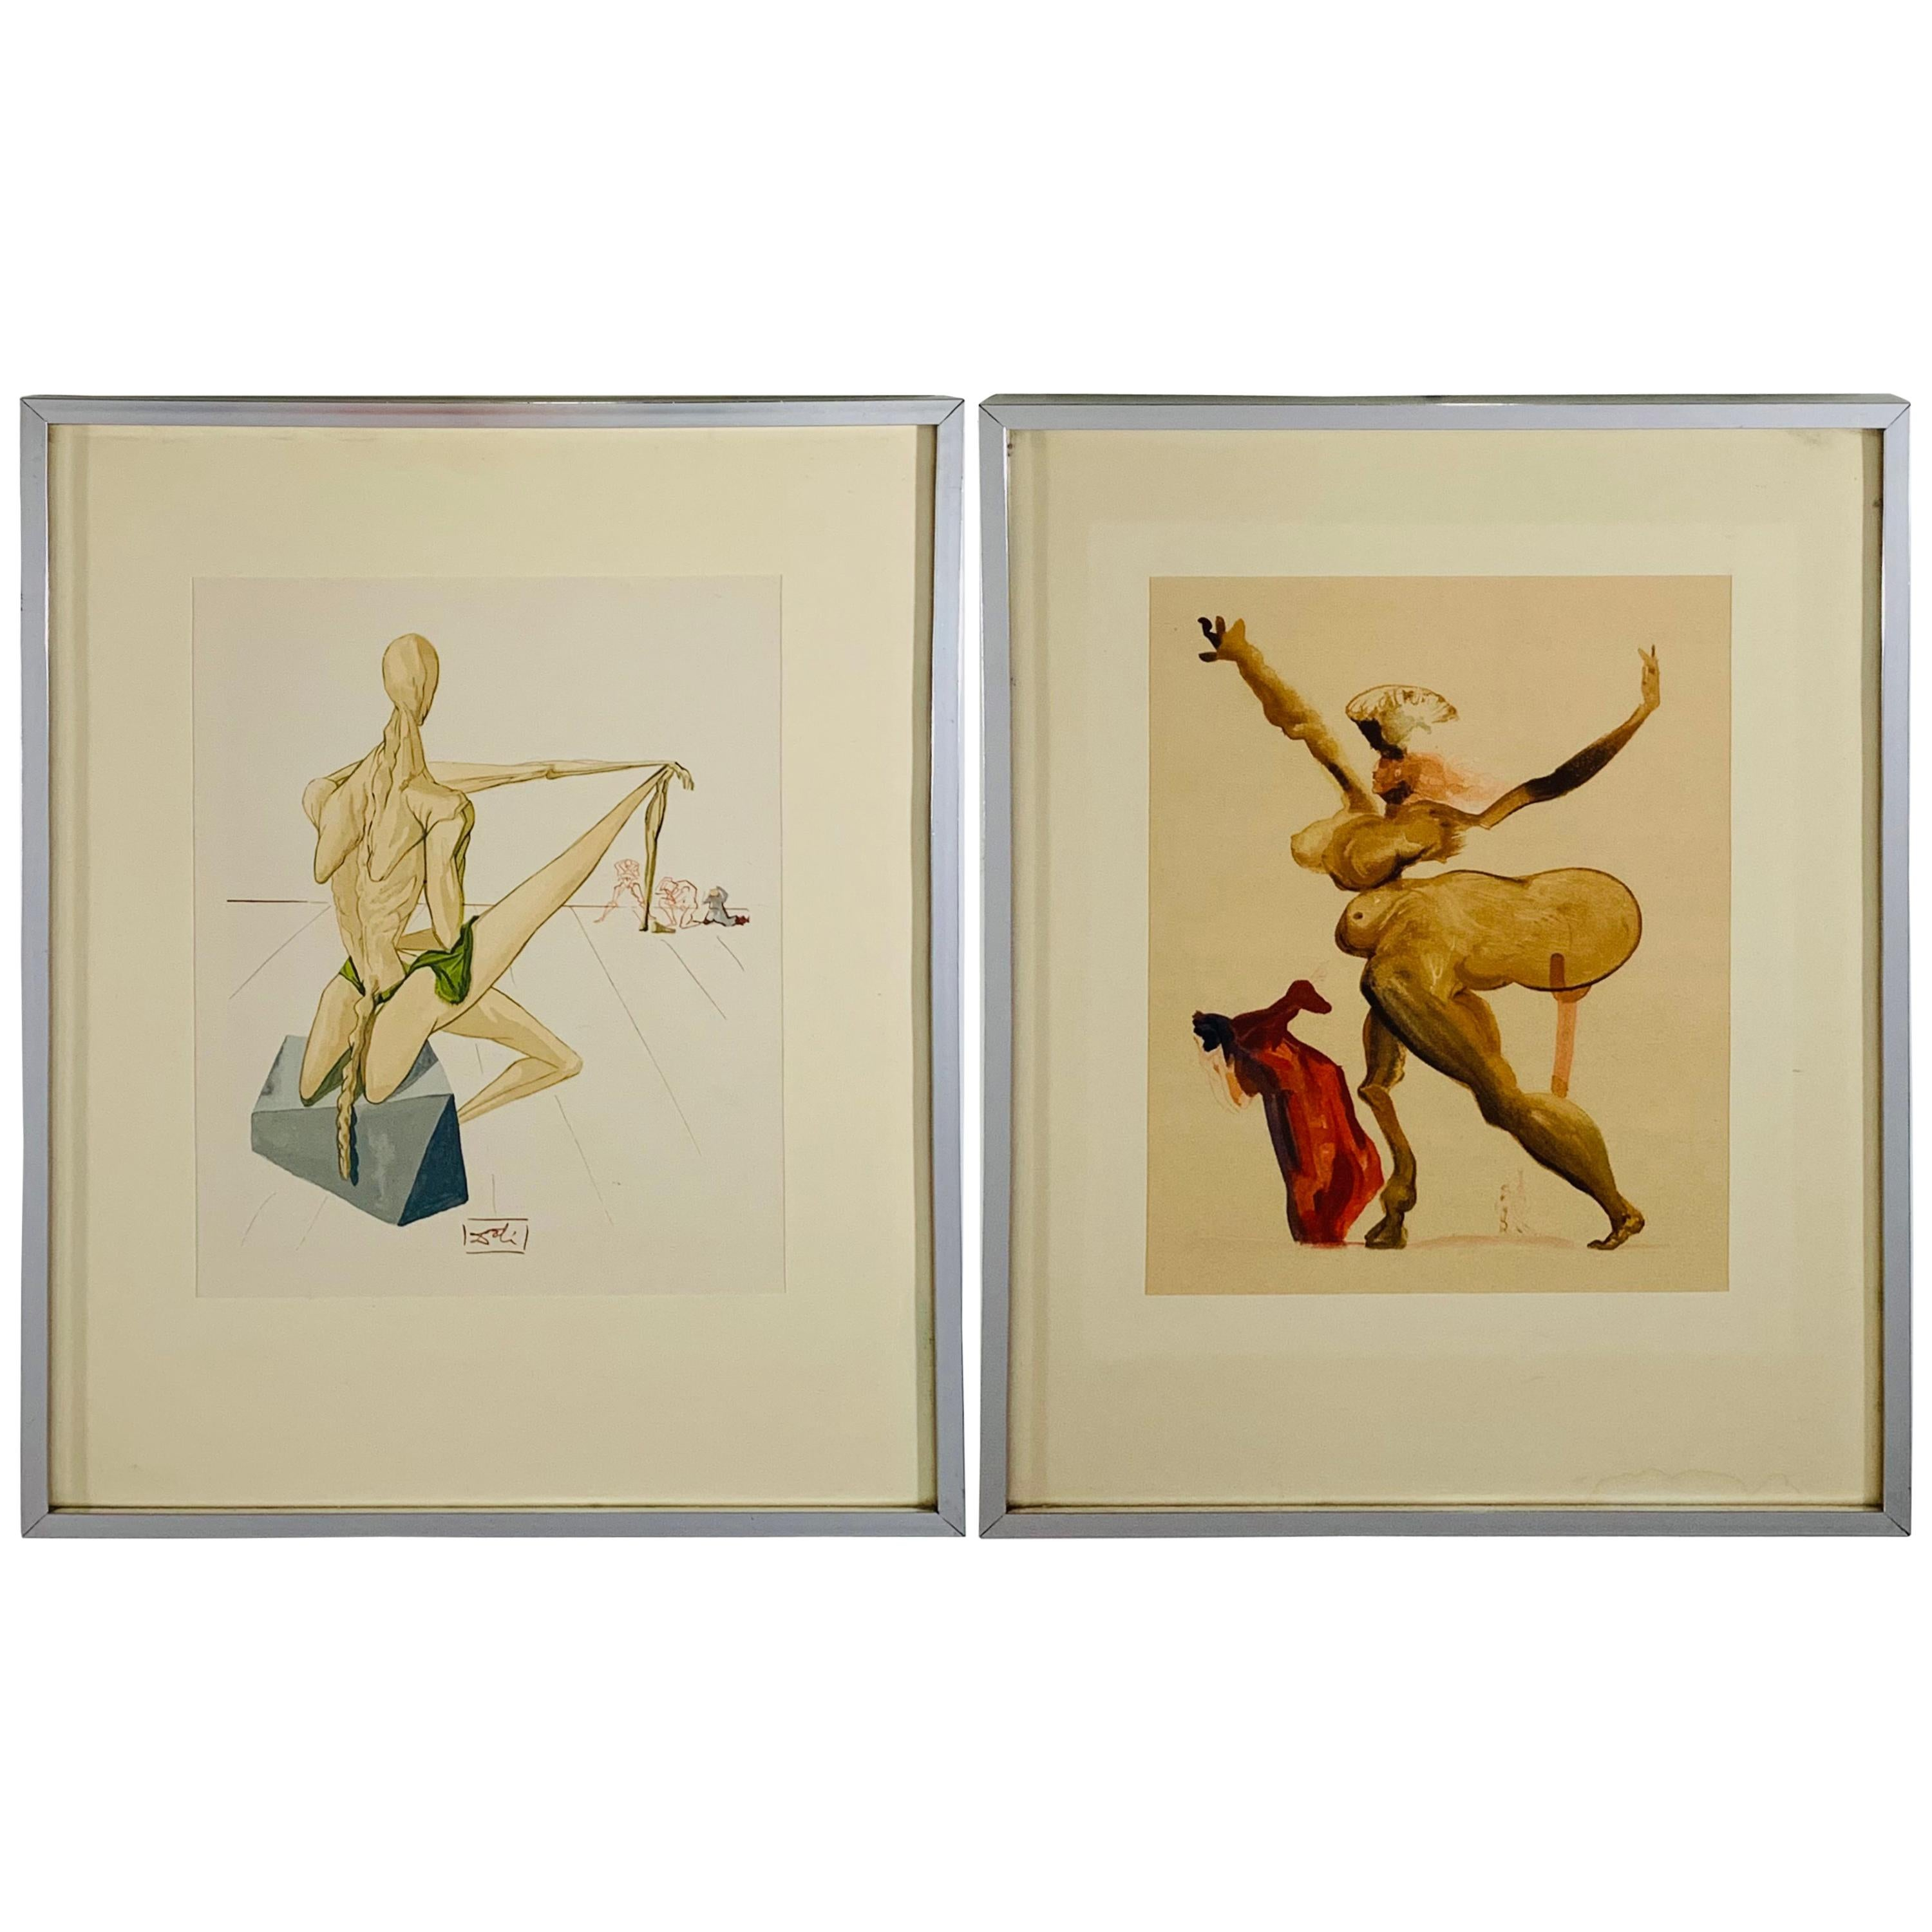 Salvador Dali The Divine Comedy Inferno Canto 5 and 33 Framed and Signed, 1960